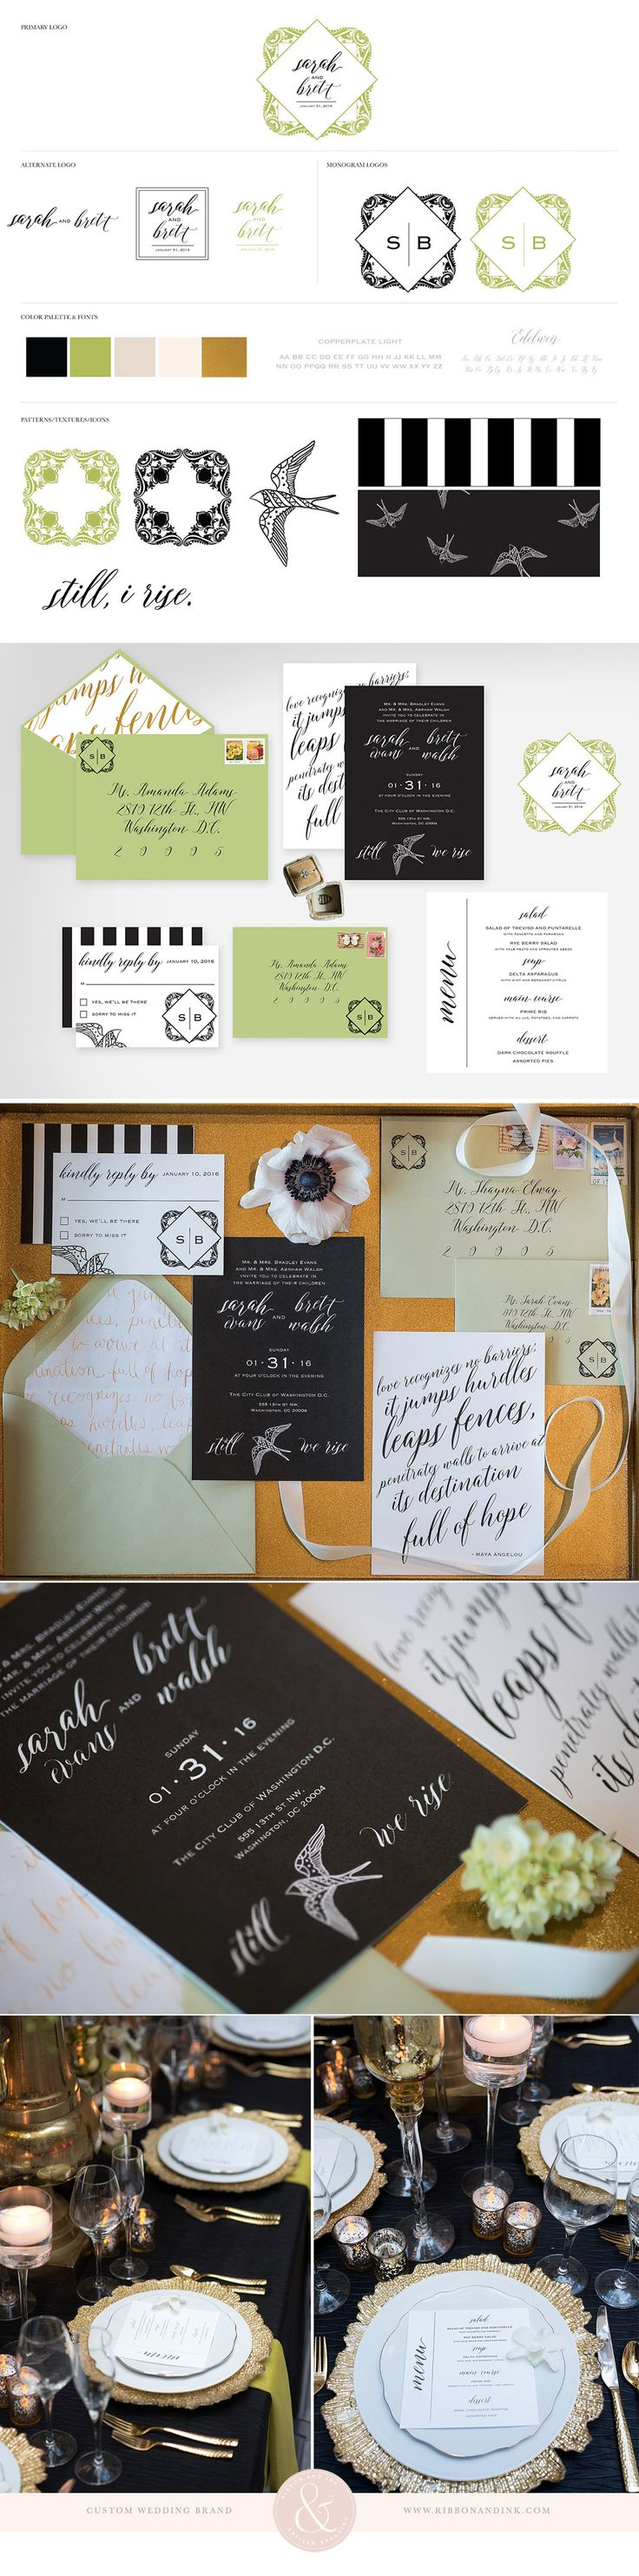 357 Best Invitations And Paper Products Images On Pinterest